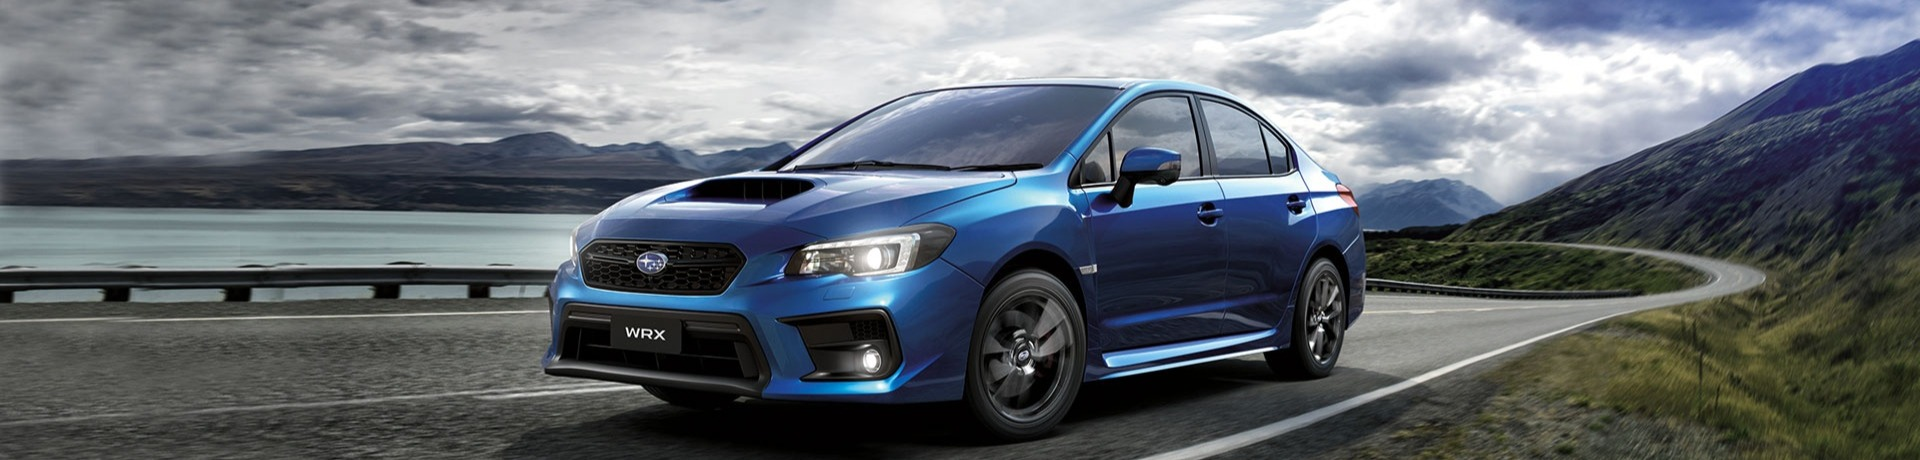 Search Our Inventory - Melville Subaru - Melville, WA